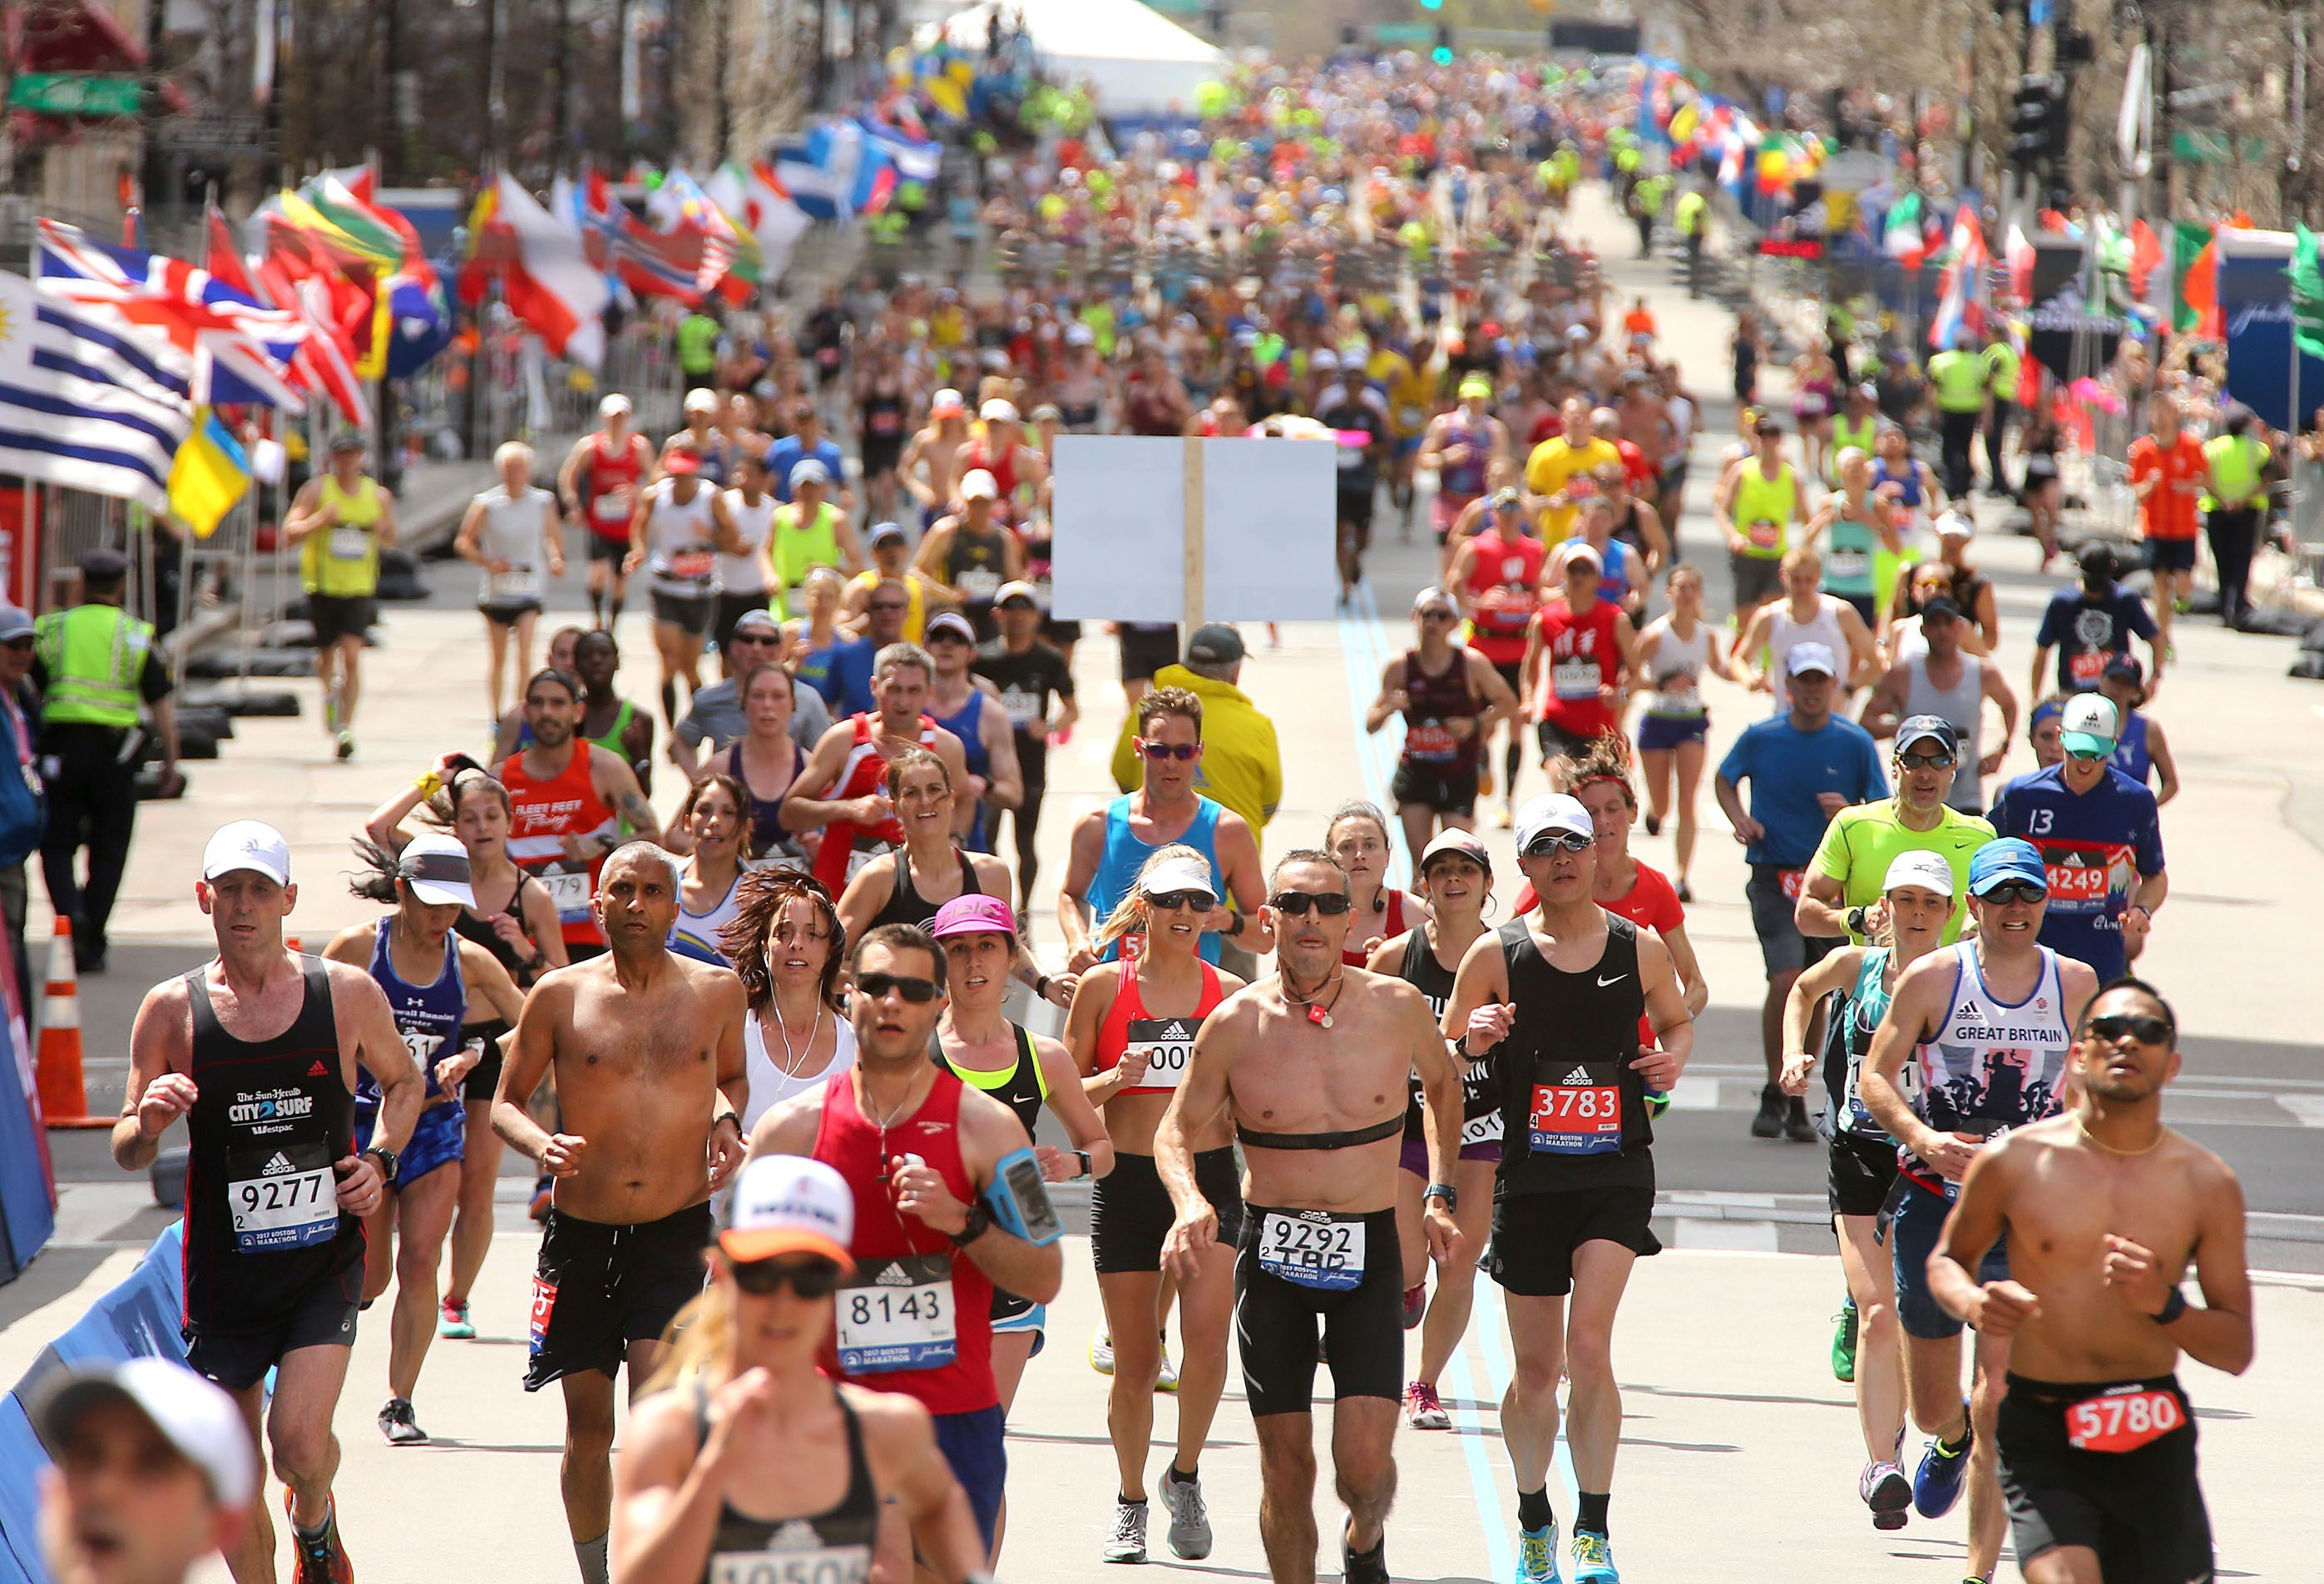 Plenty of runners are qualifying for the 2020 Boston Marathon even though the time standards are five minutes faster across all age groups